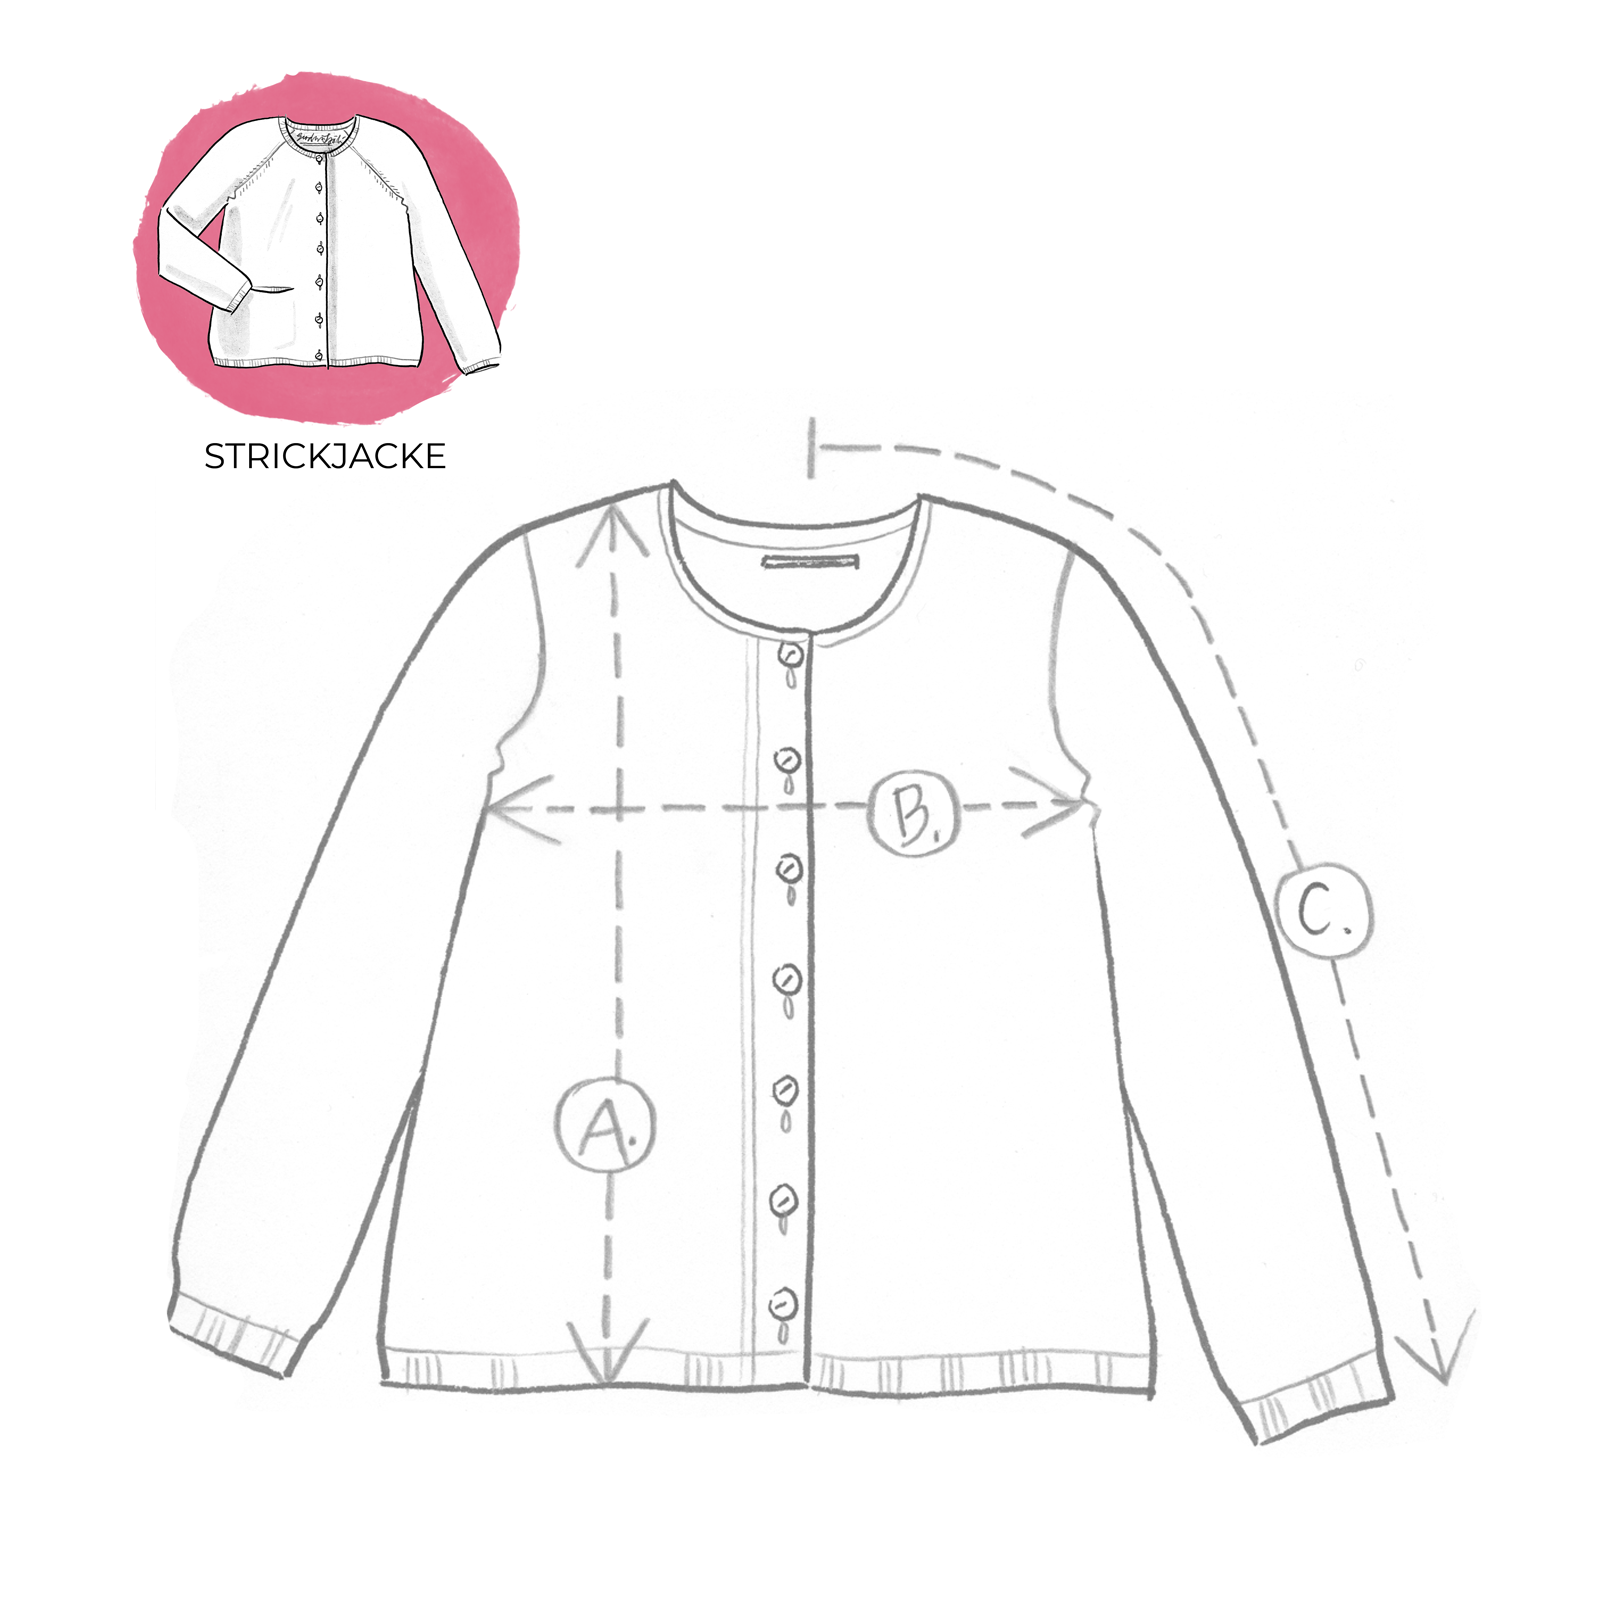 measurment guide_icon_illustration_Cardigan_GE.png